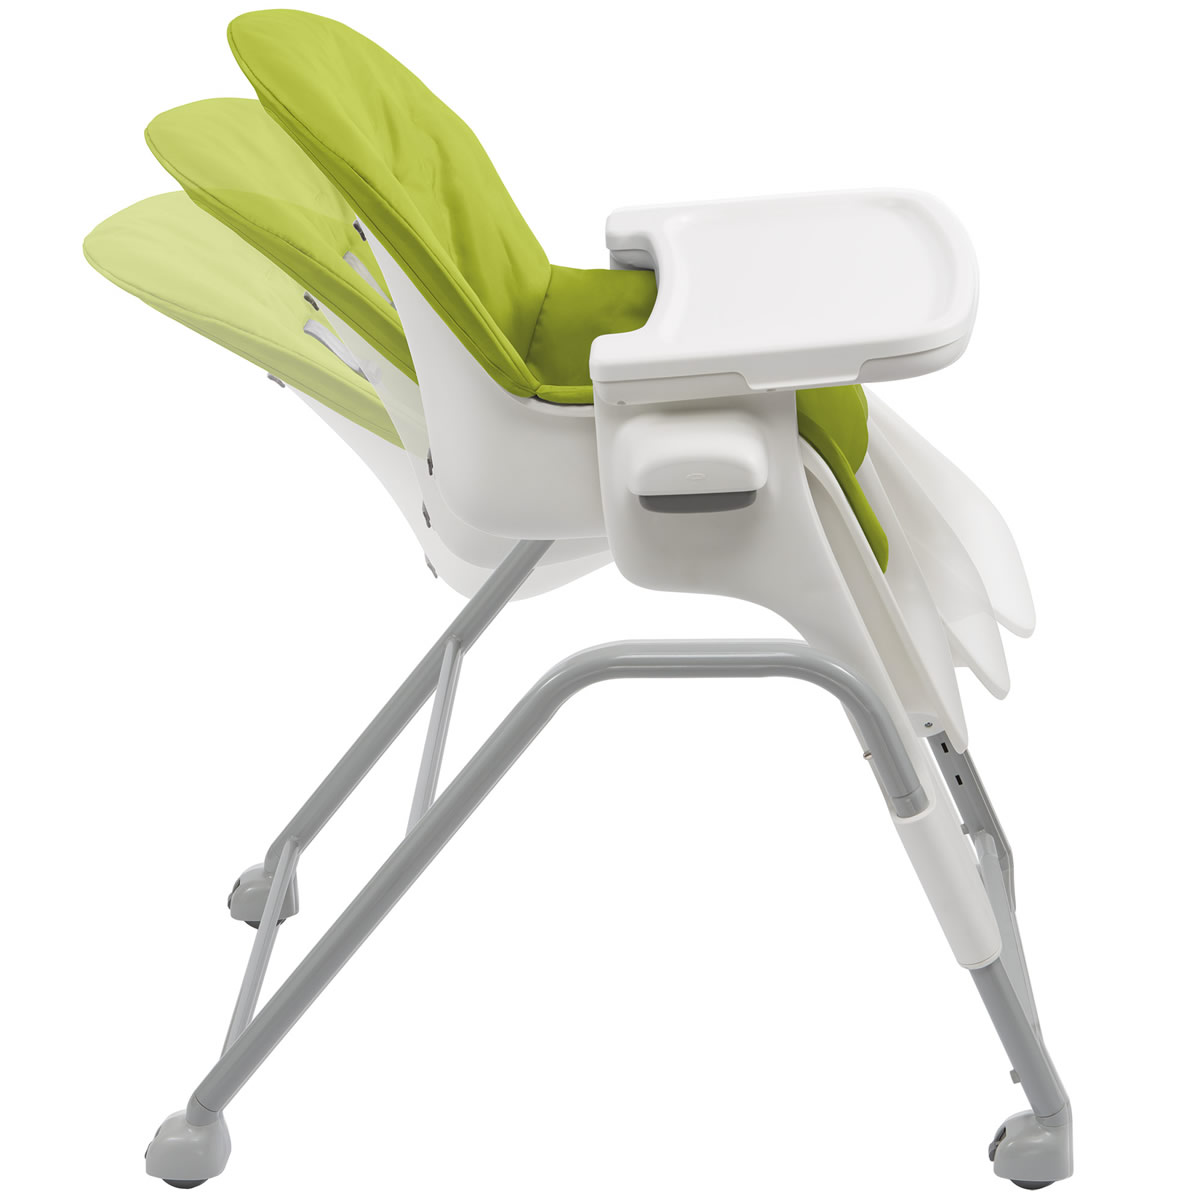 tot sprout high chair review blue bay cowboy hats oxo seedling